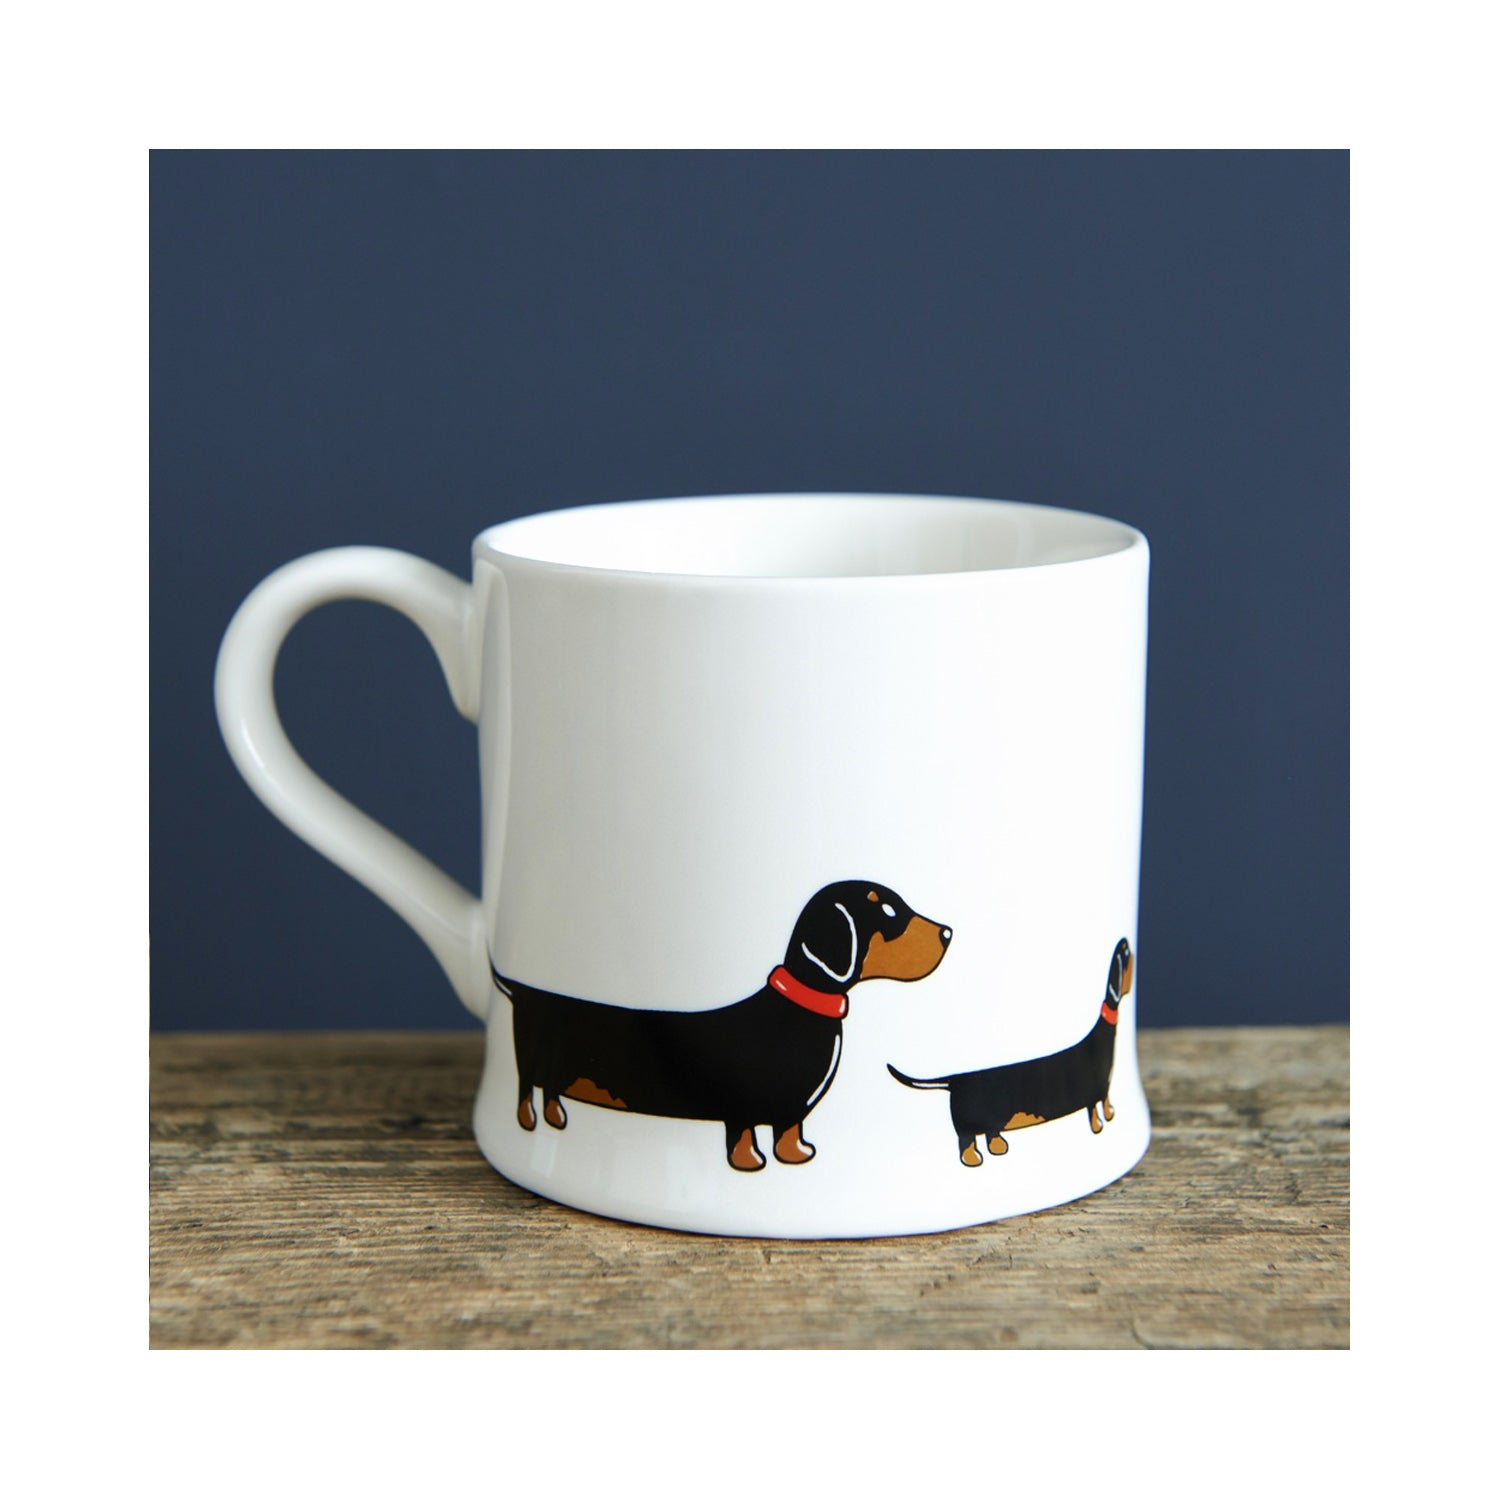 Dog Lover Gifts available at Dog Krazy Gifts - Florence The Dachshund Mug - part of the Sweet William range available from Dog Krazy Gifts